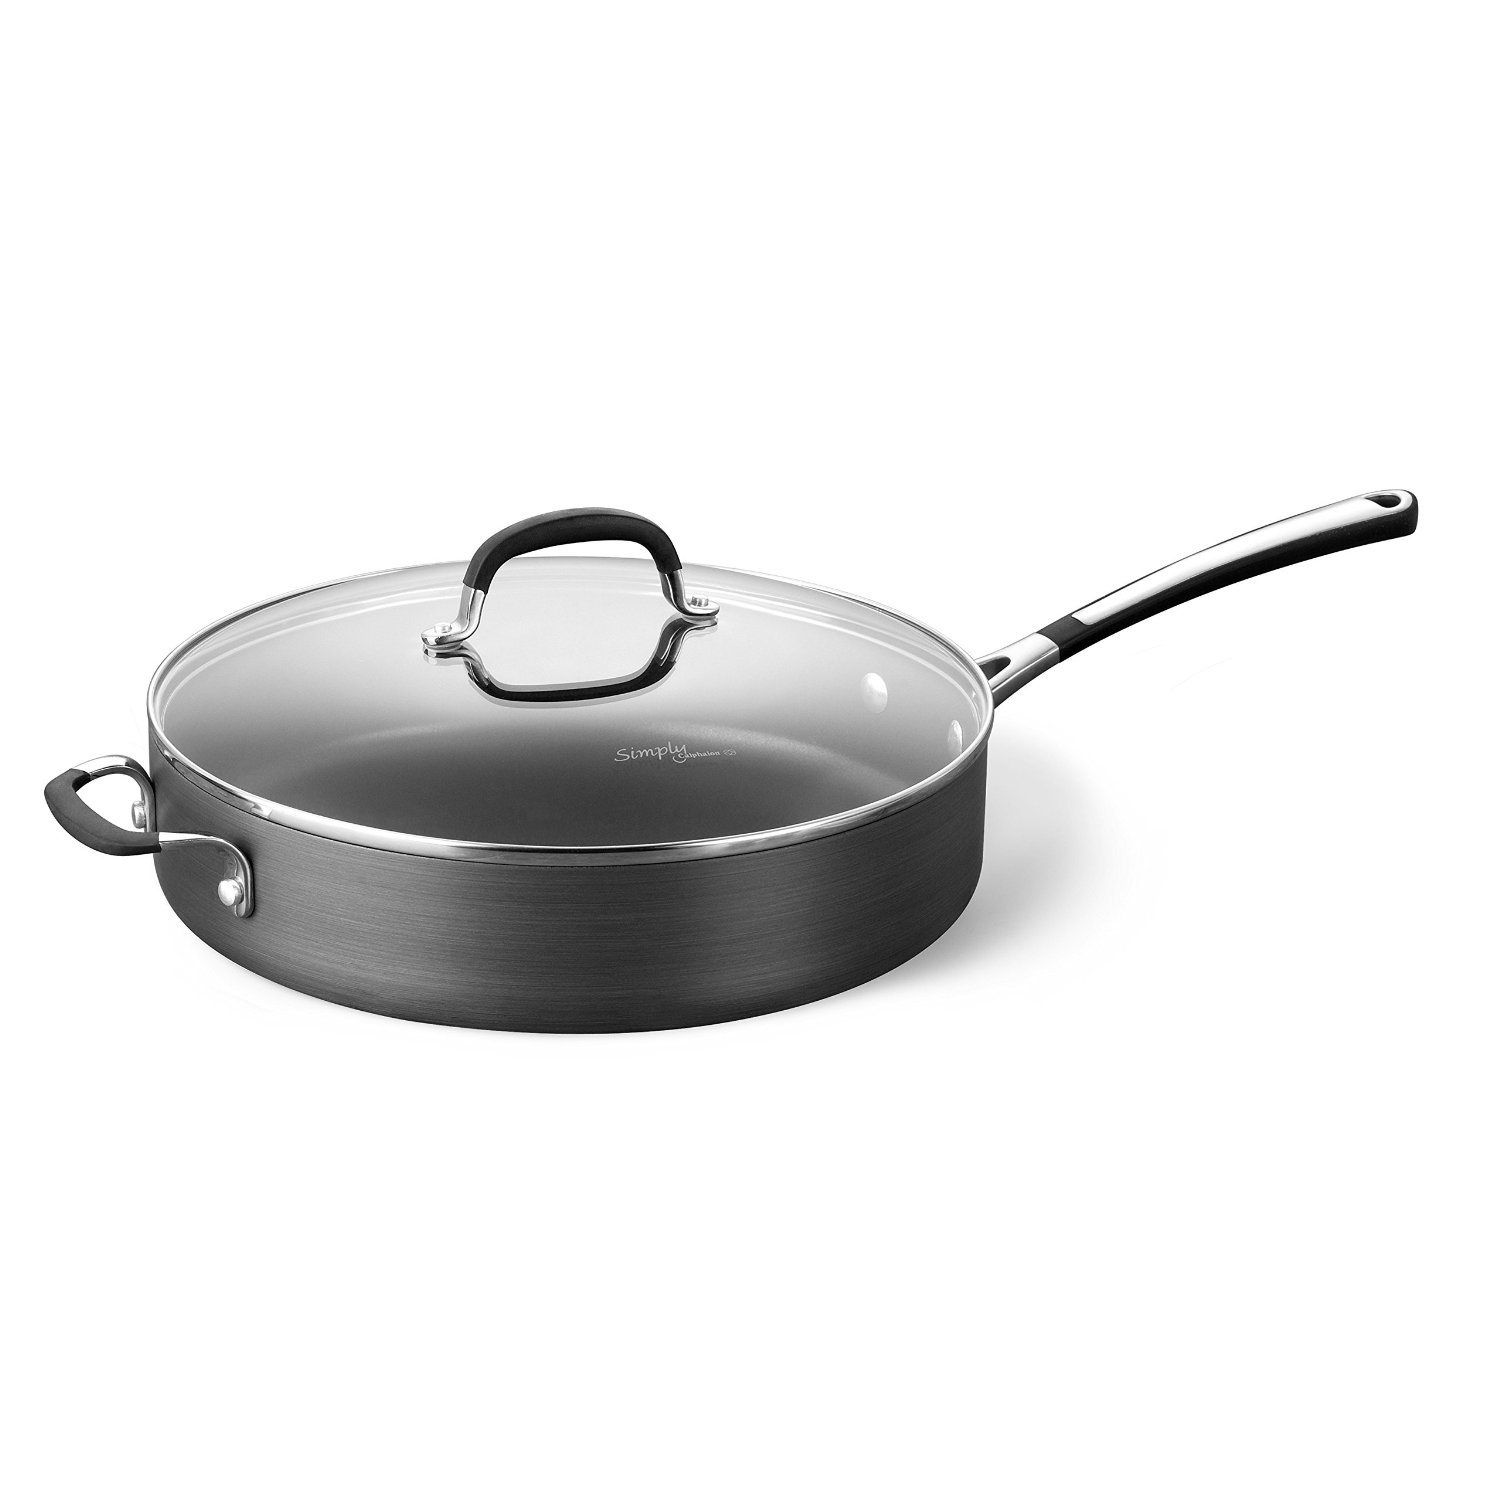 Top 10 Calphalon Cookware Reviews Best Units For You 2019